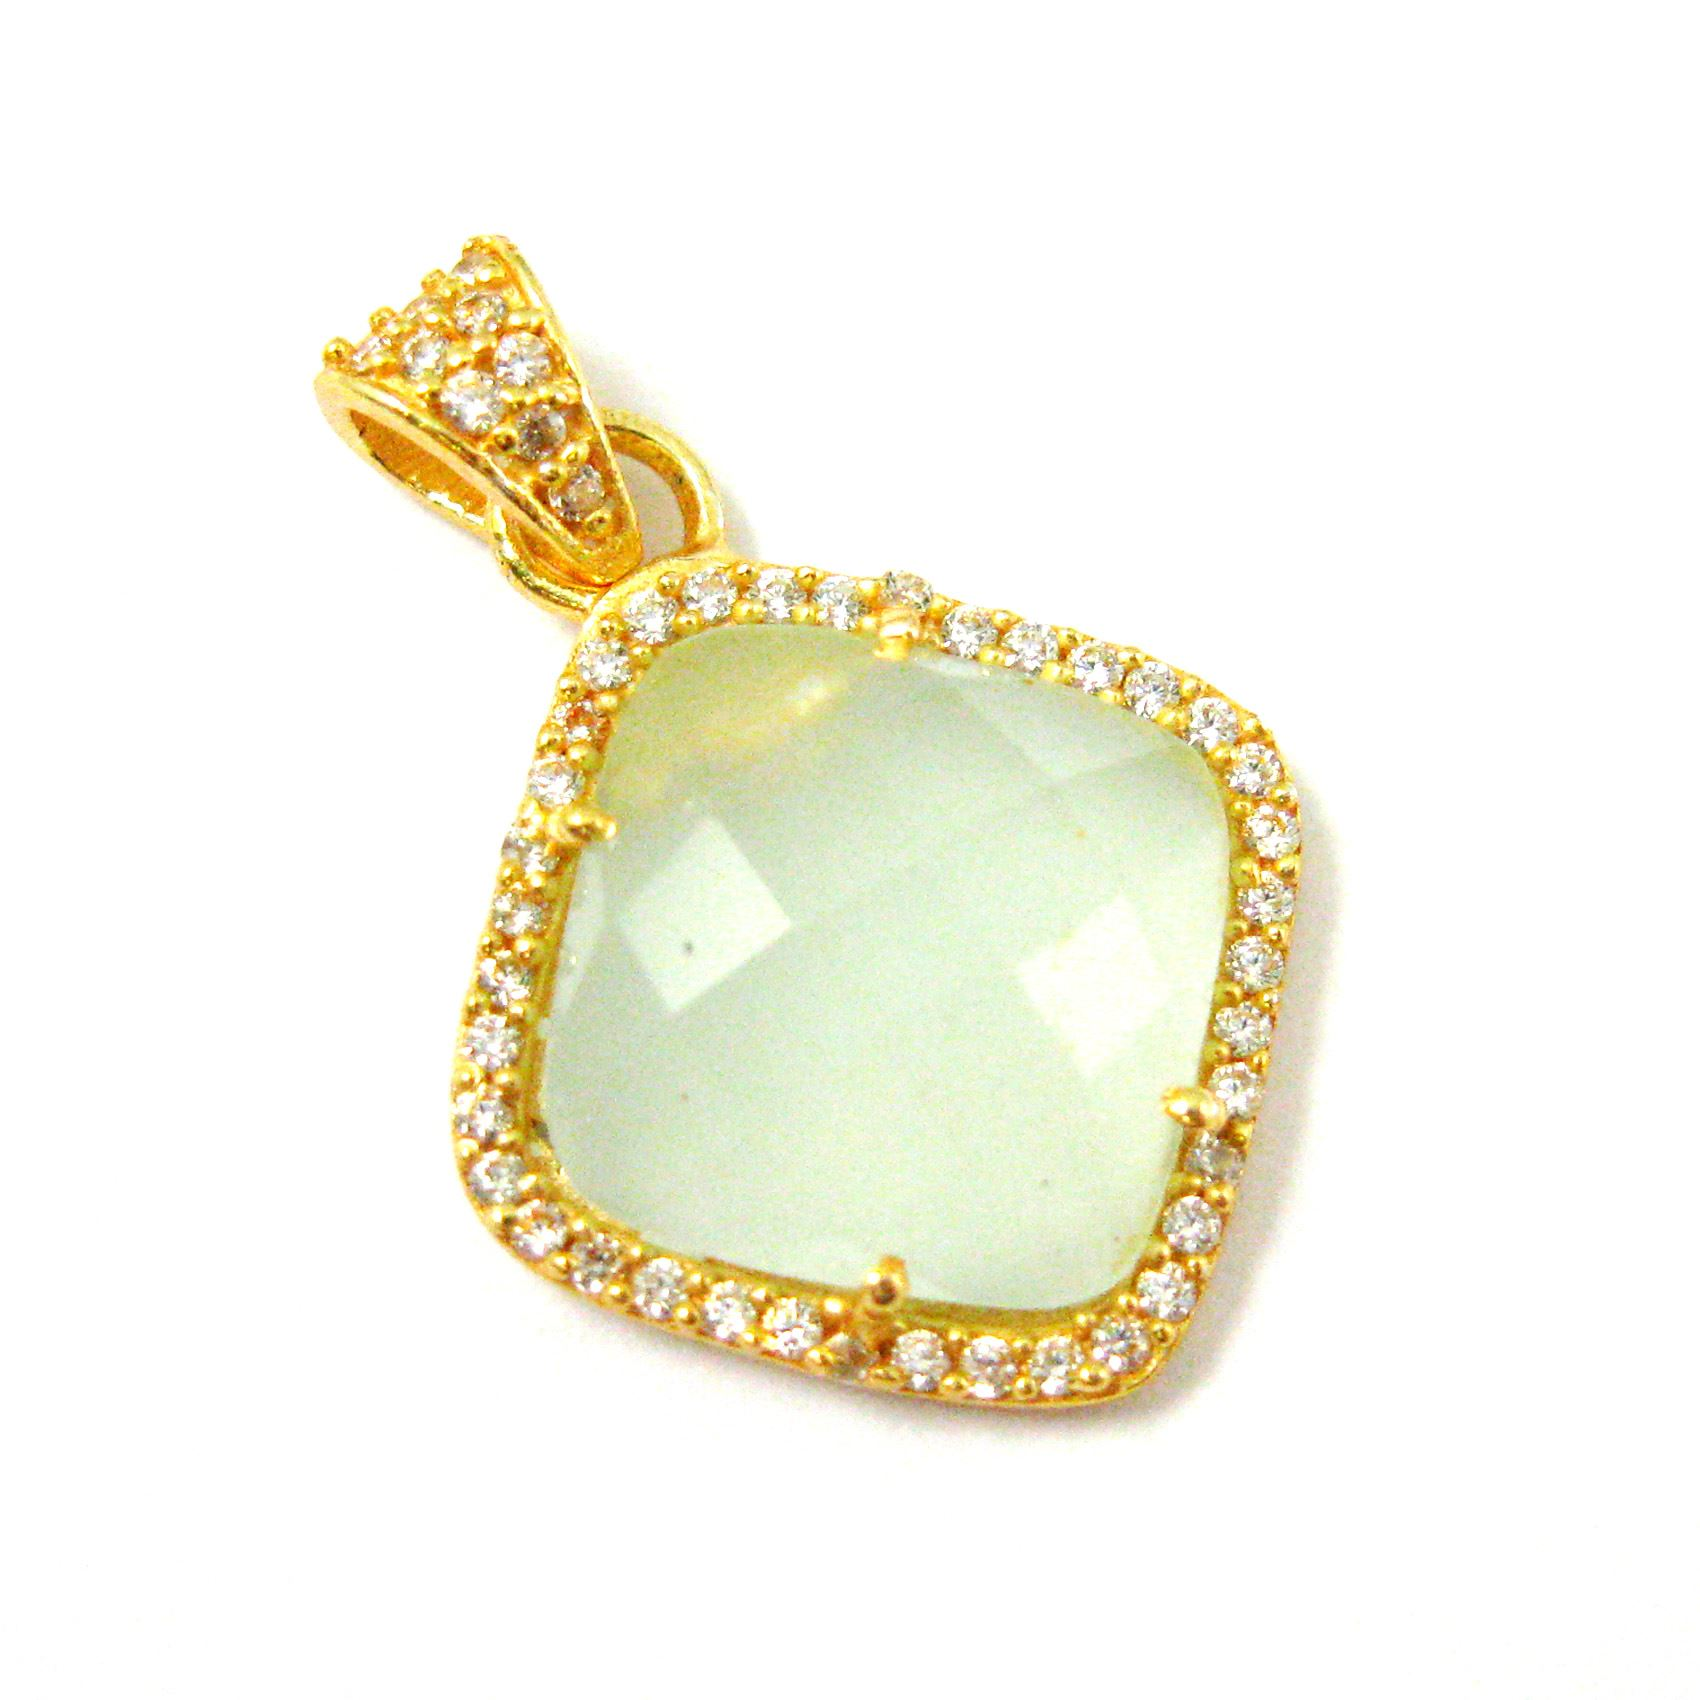 Gold plated Sterling Silver Pave Bezel Gemstone Pendant - Cubic Zirconia Pave Setting -  Diamond Shape Faceted Stone-Aqua Chalcedony - 17mm